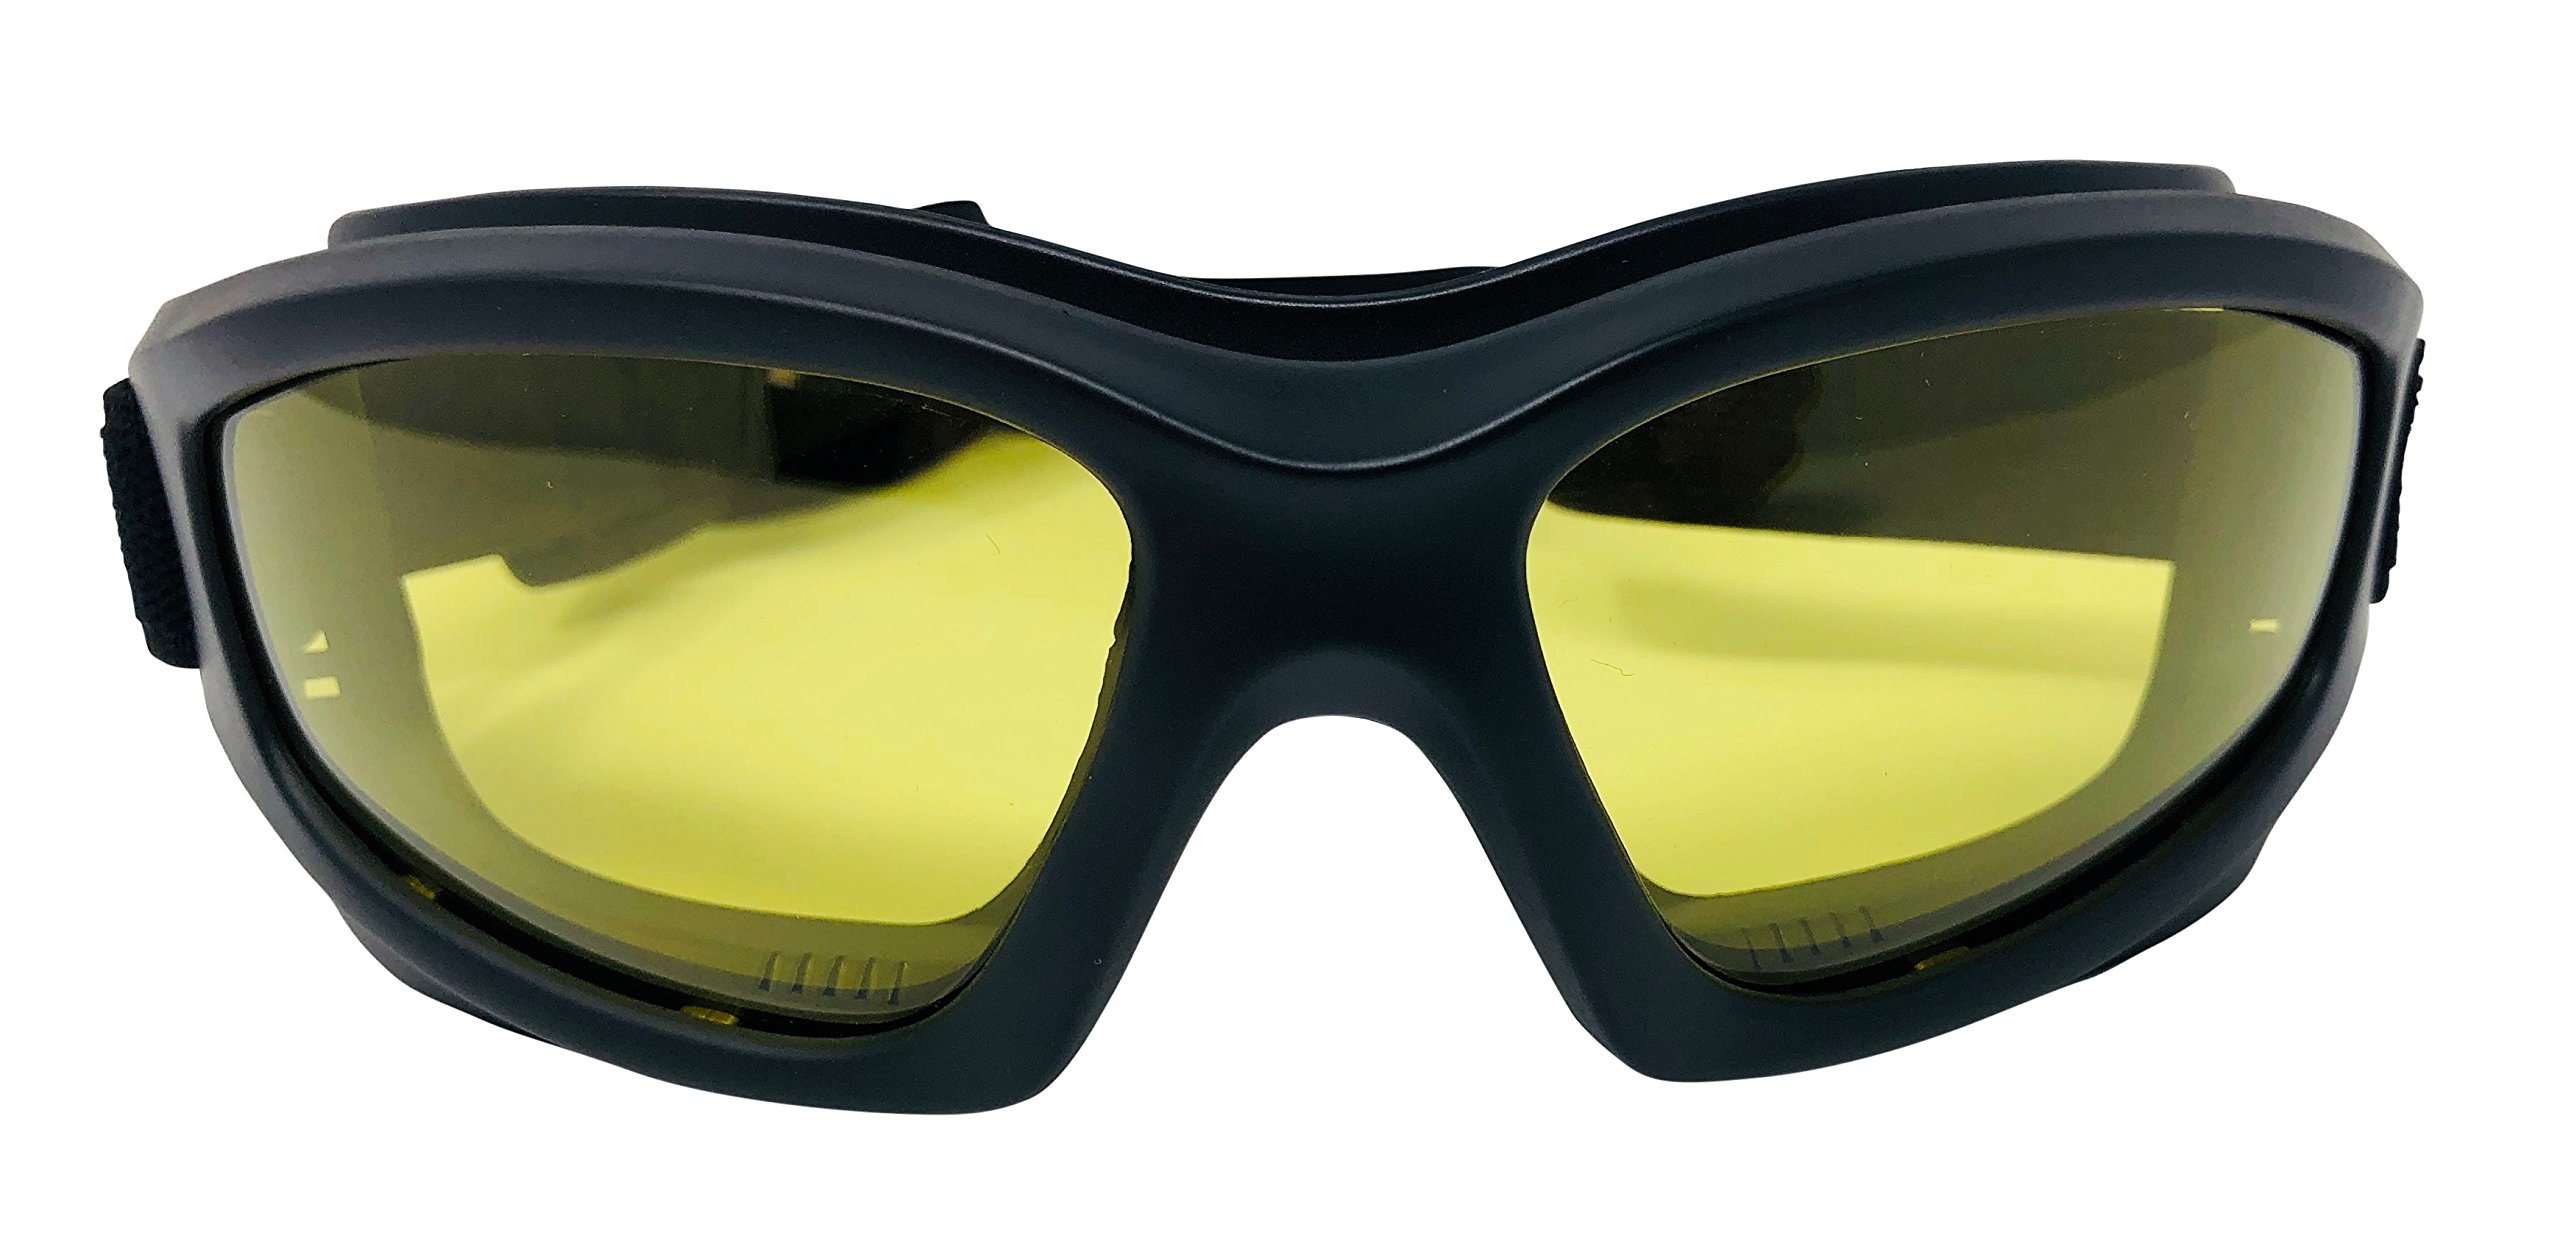 Yellow Motorcycle Riding Goggles: Night Vision Nighttime Riding Goggles''No Foam'' Design w/Hard Case, Microfiber Cleaning Cloth & Pouch Included (Yellow Lens)